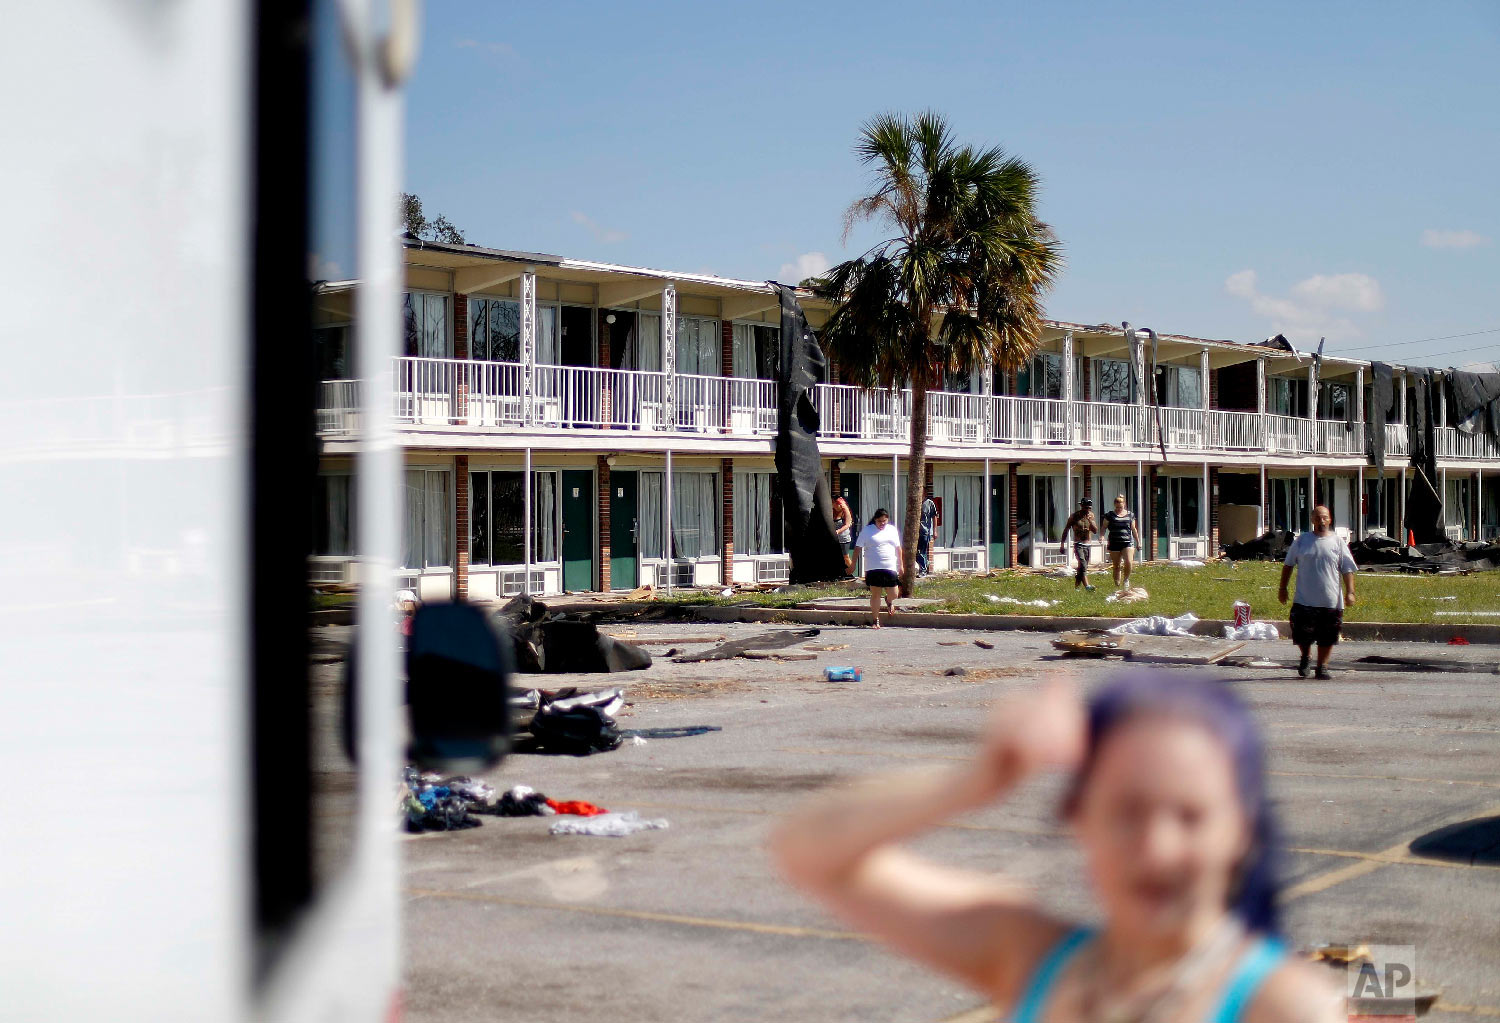 Residents walk in front of a damaged motel in Panama City on Oct. 16, 2018. (AP Photo/David Goldman)